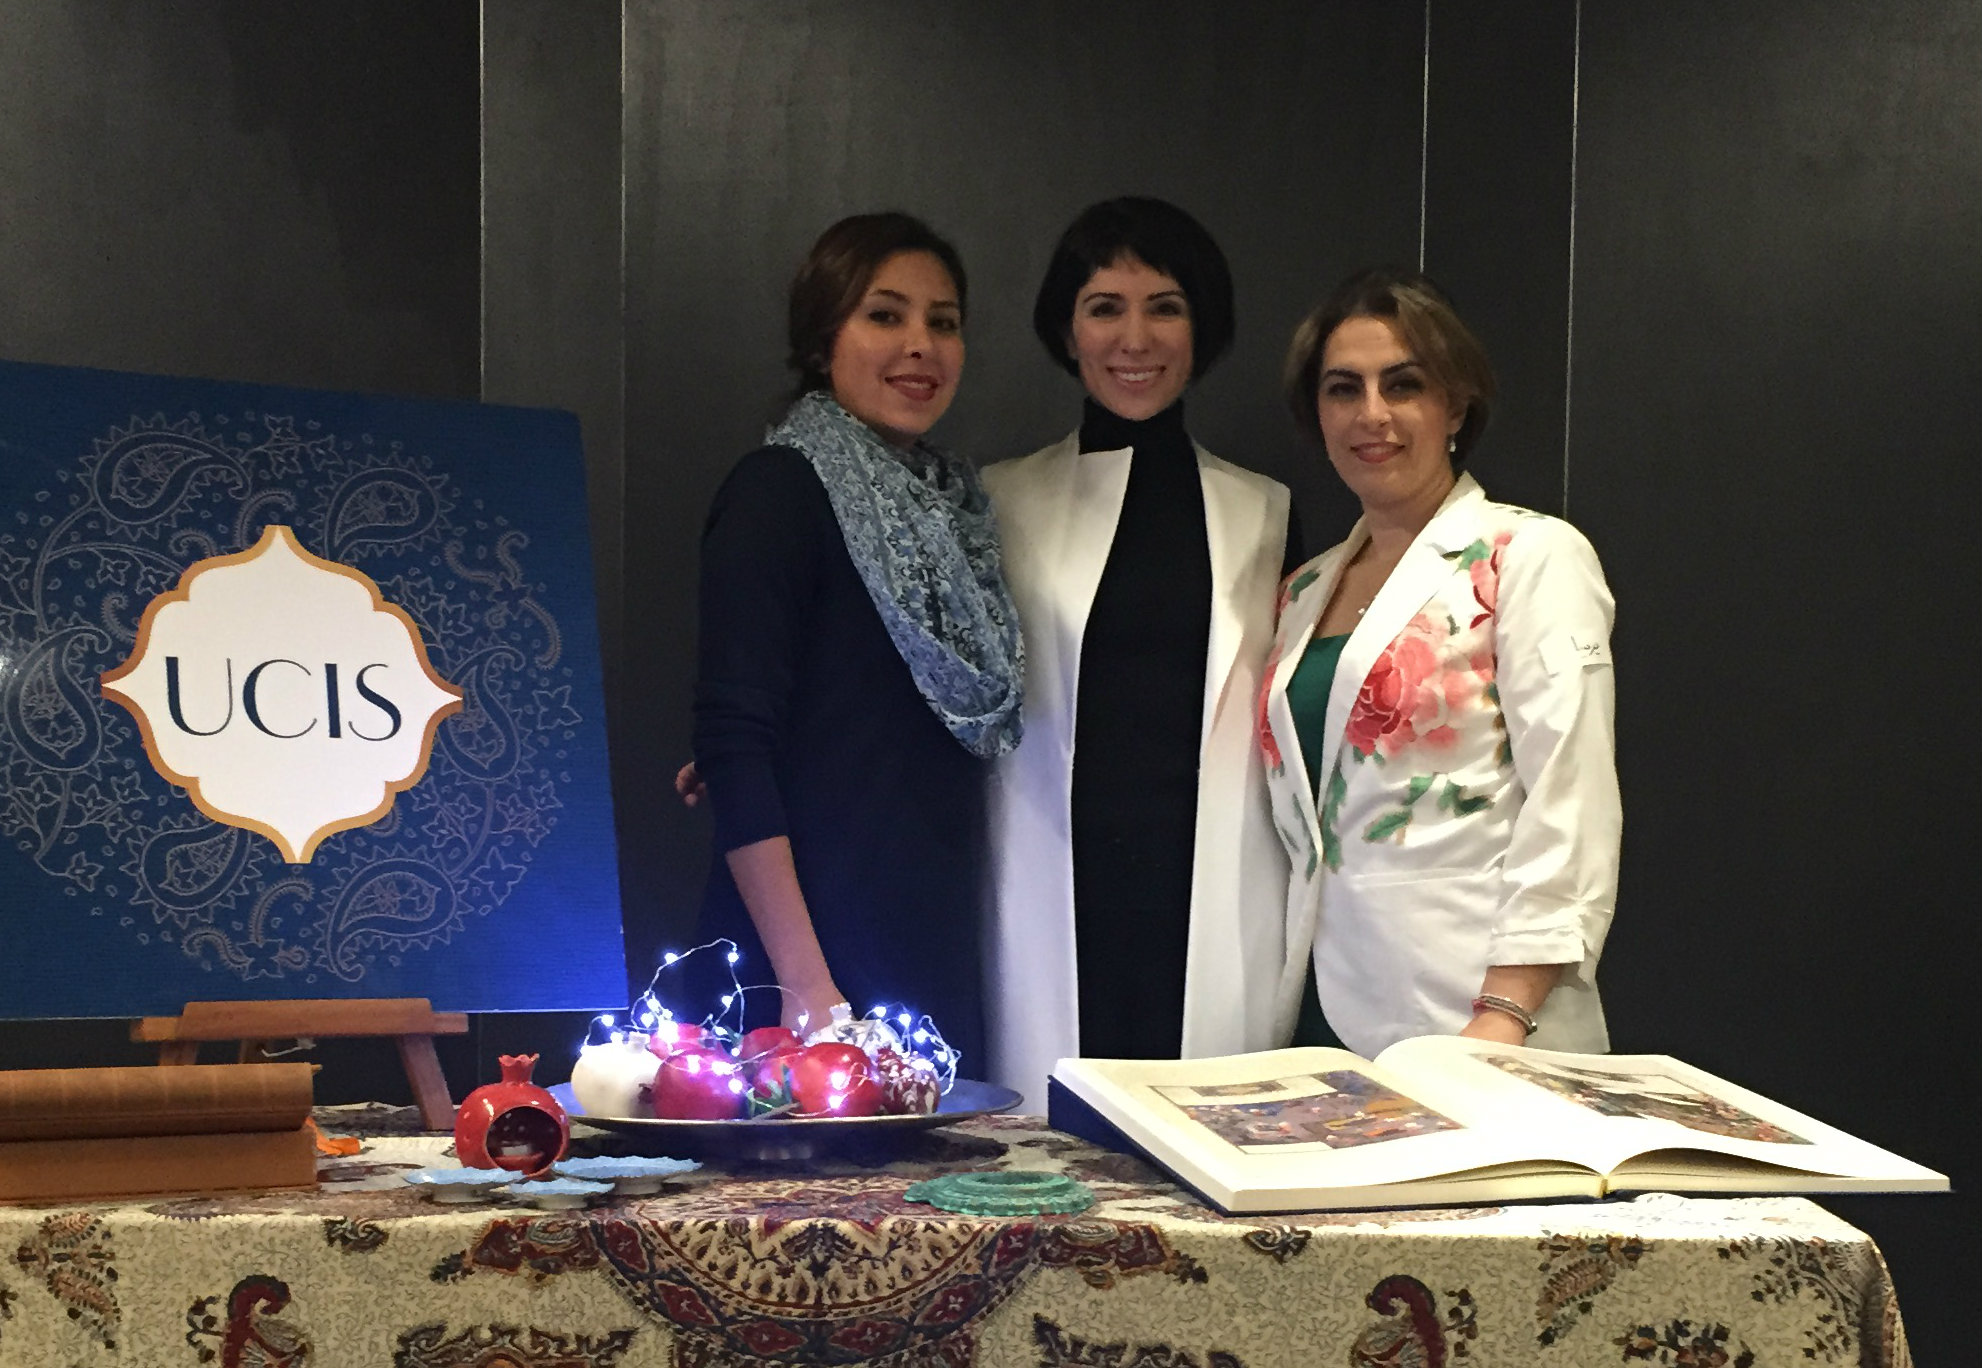 The University of Canterbury Iranian Society (UCIS) executive members at the traditional Yalda celebration. From left to right: Negar Ghrahshir, Donna Miles and Parisa Soleimani Tadi.